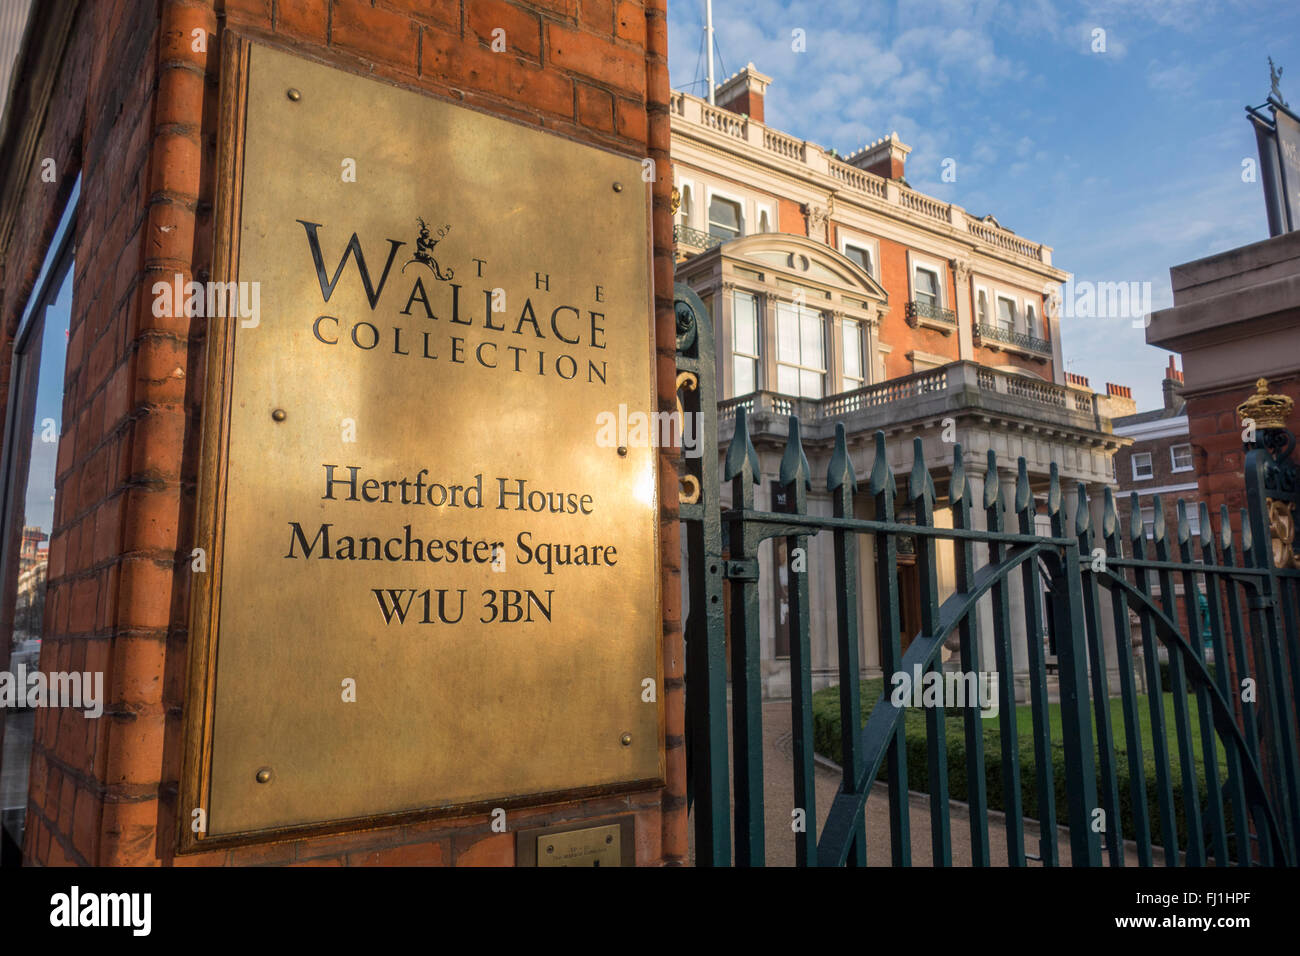 The Wallace Collection exterior sign, London, UK - Stock Image